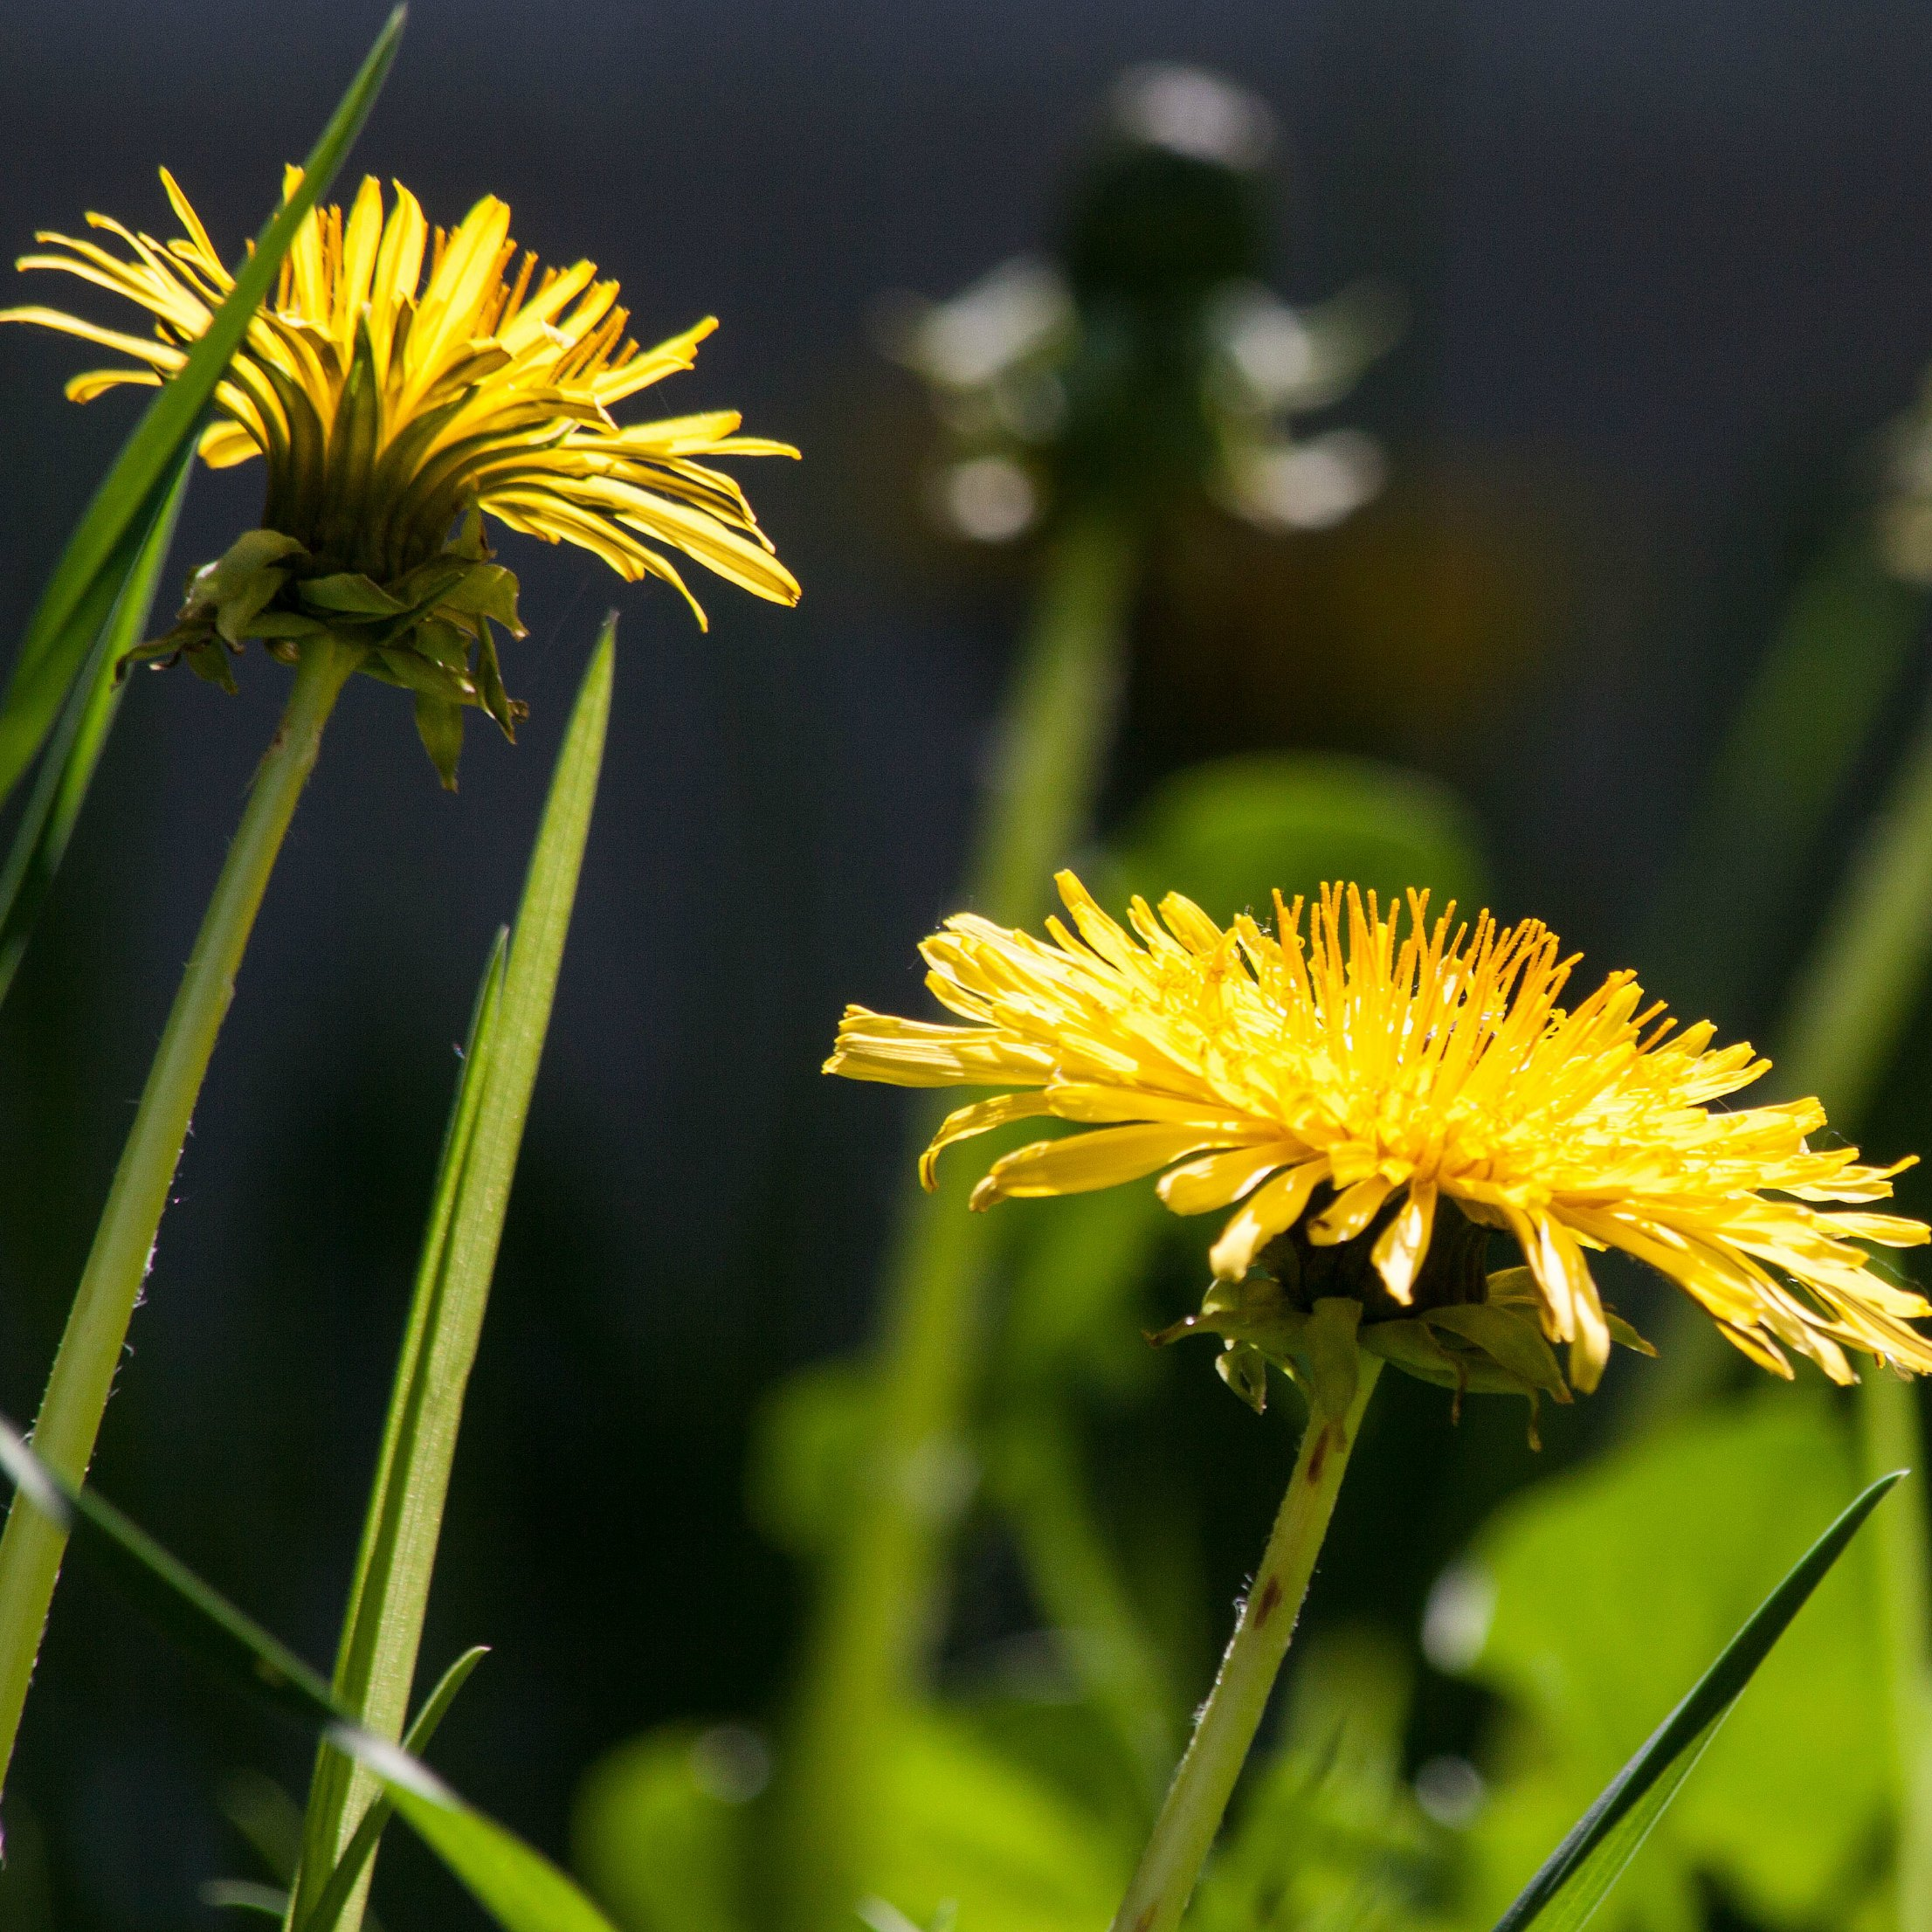 dandelion-flower-flowers-nature-67612_Square.jpg